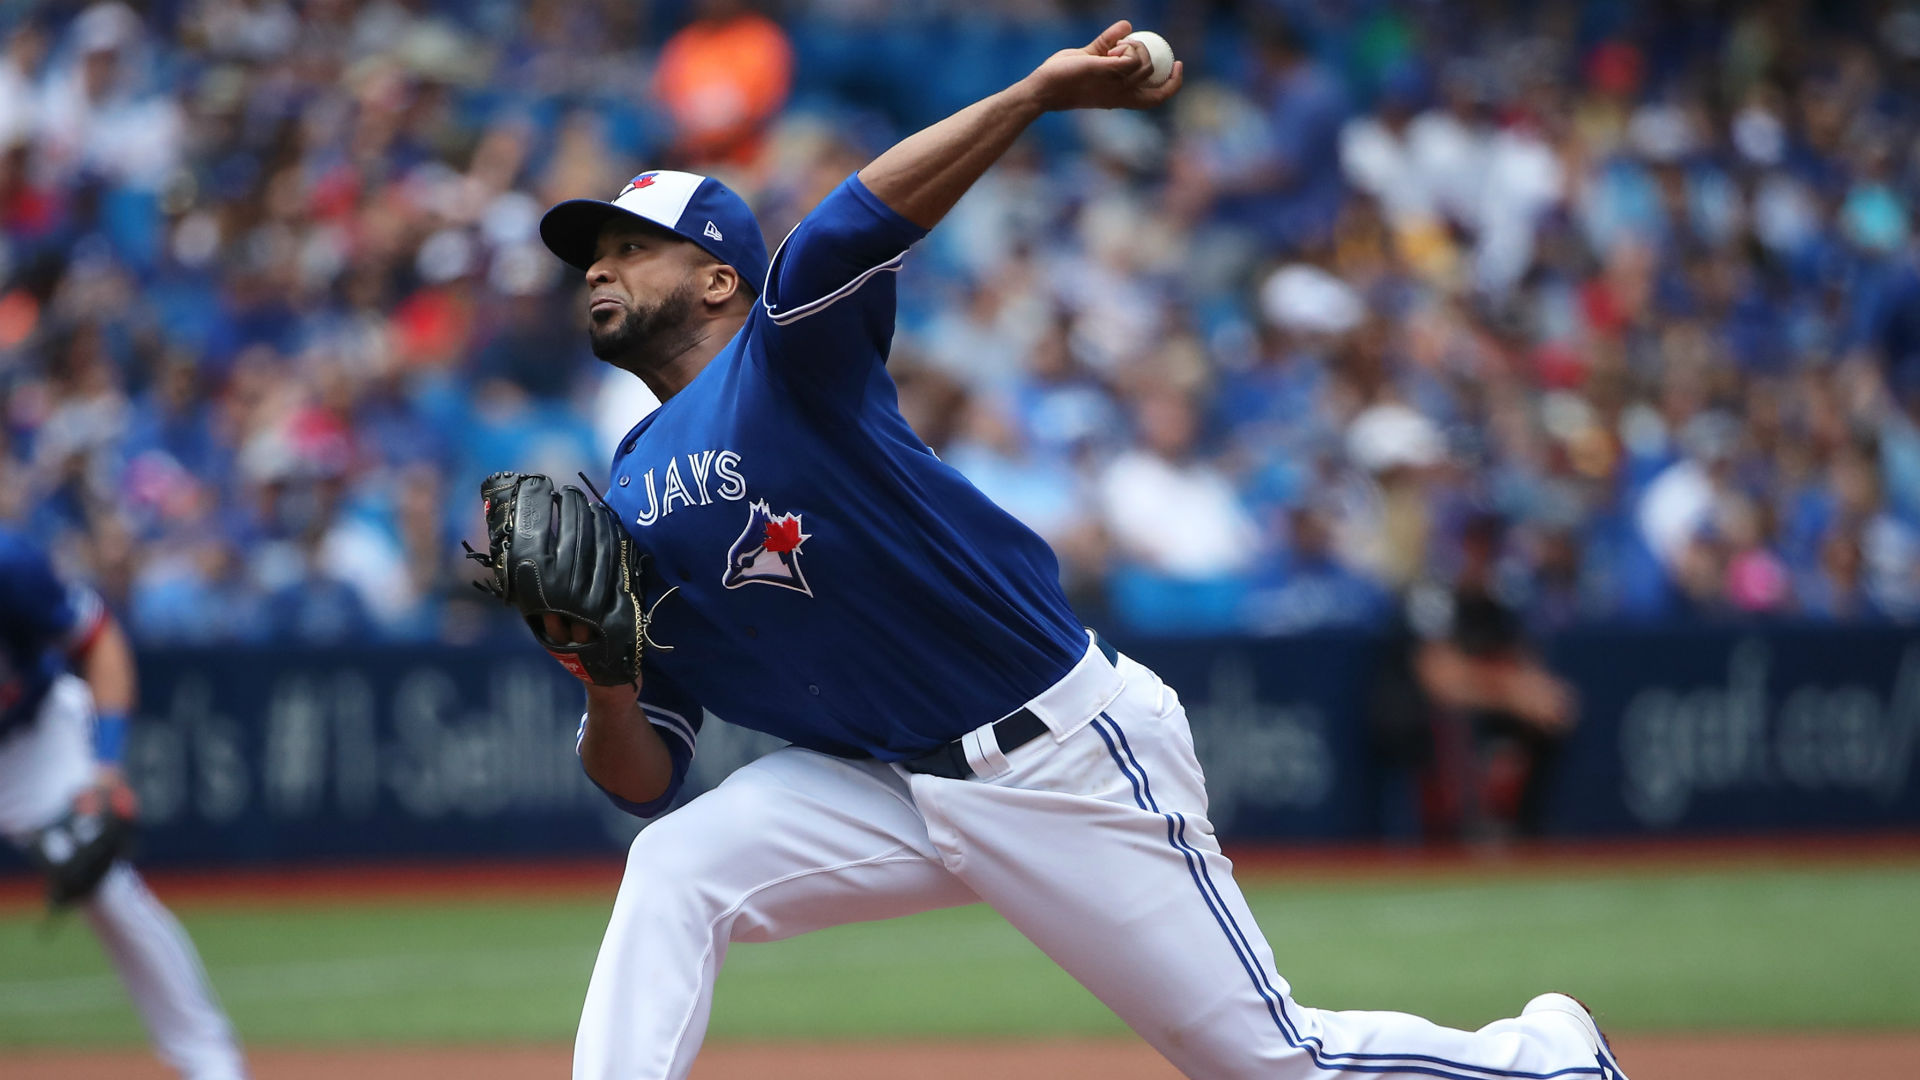 Astros acquire LHP Liriano from Blue Jays